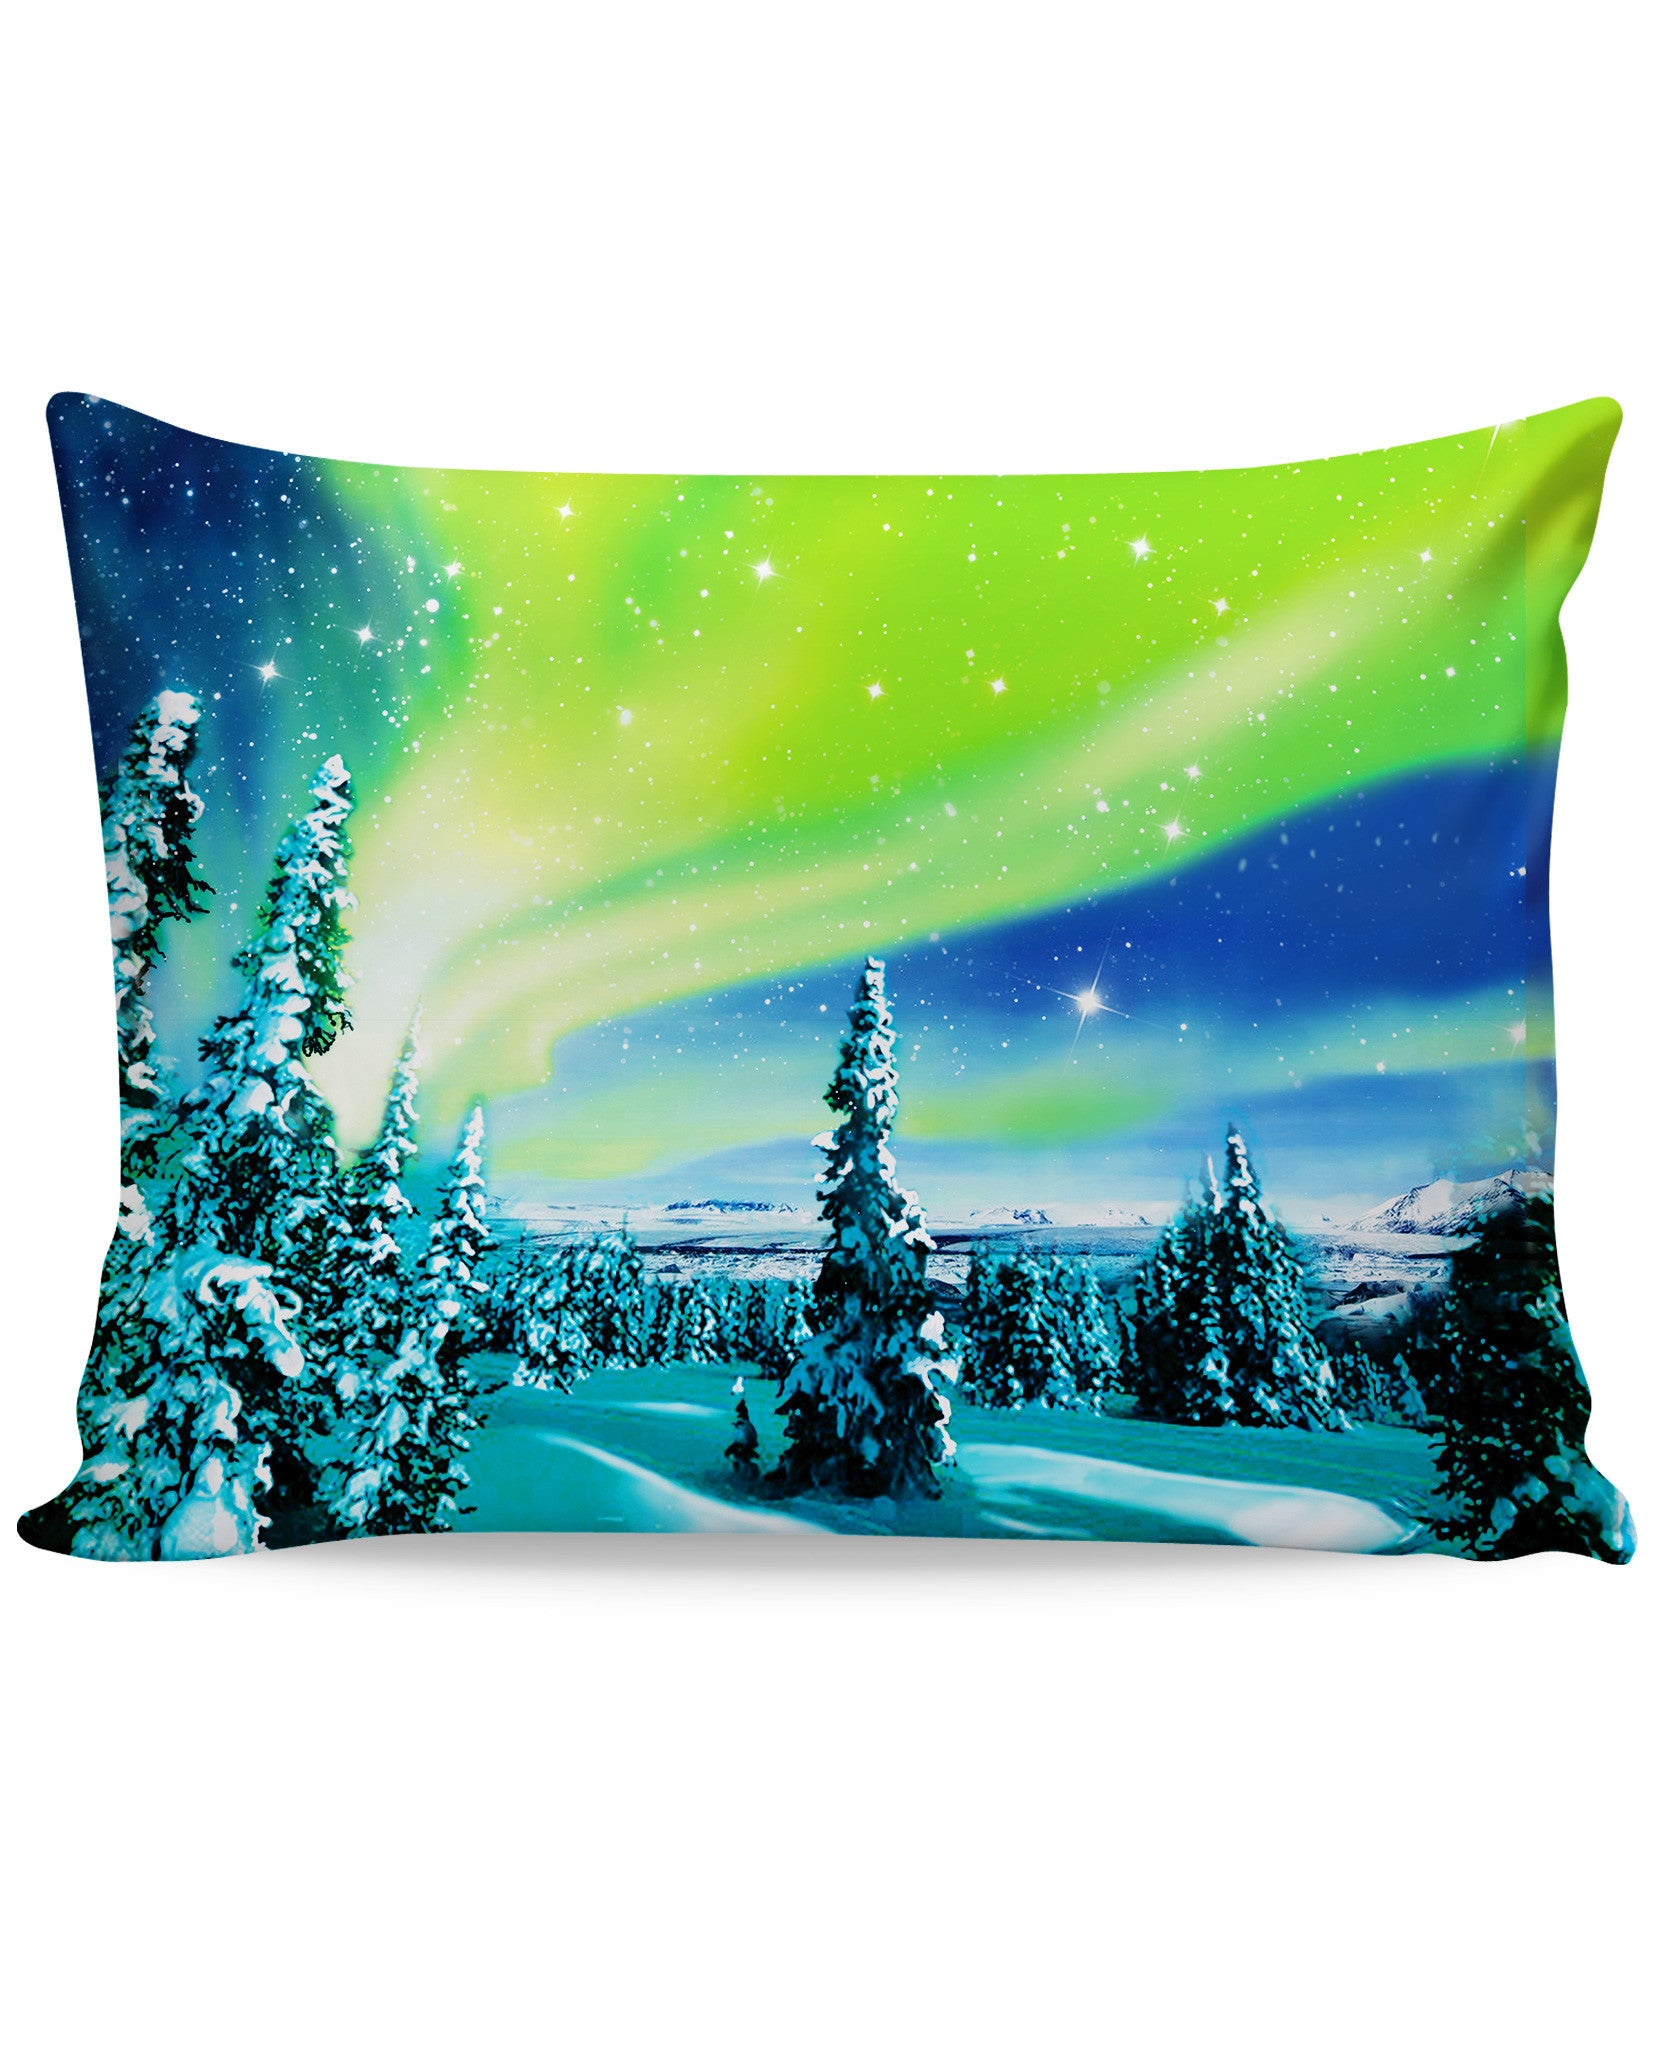 Arctic Nights Pillow Case